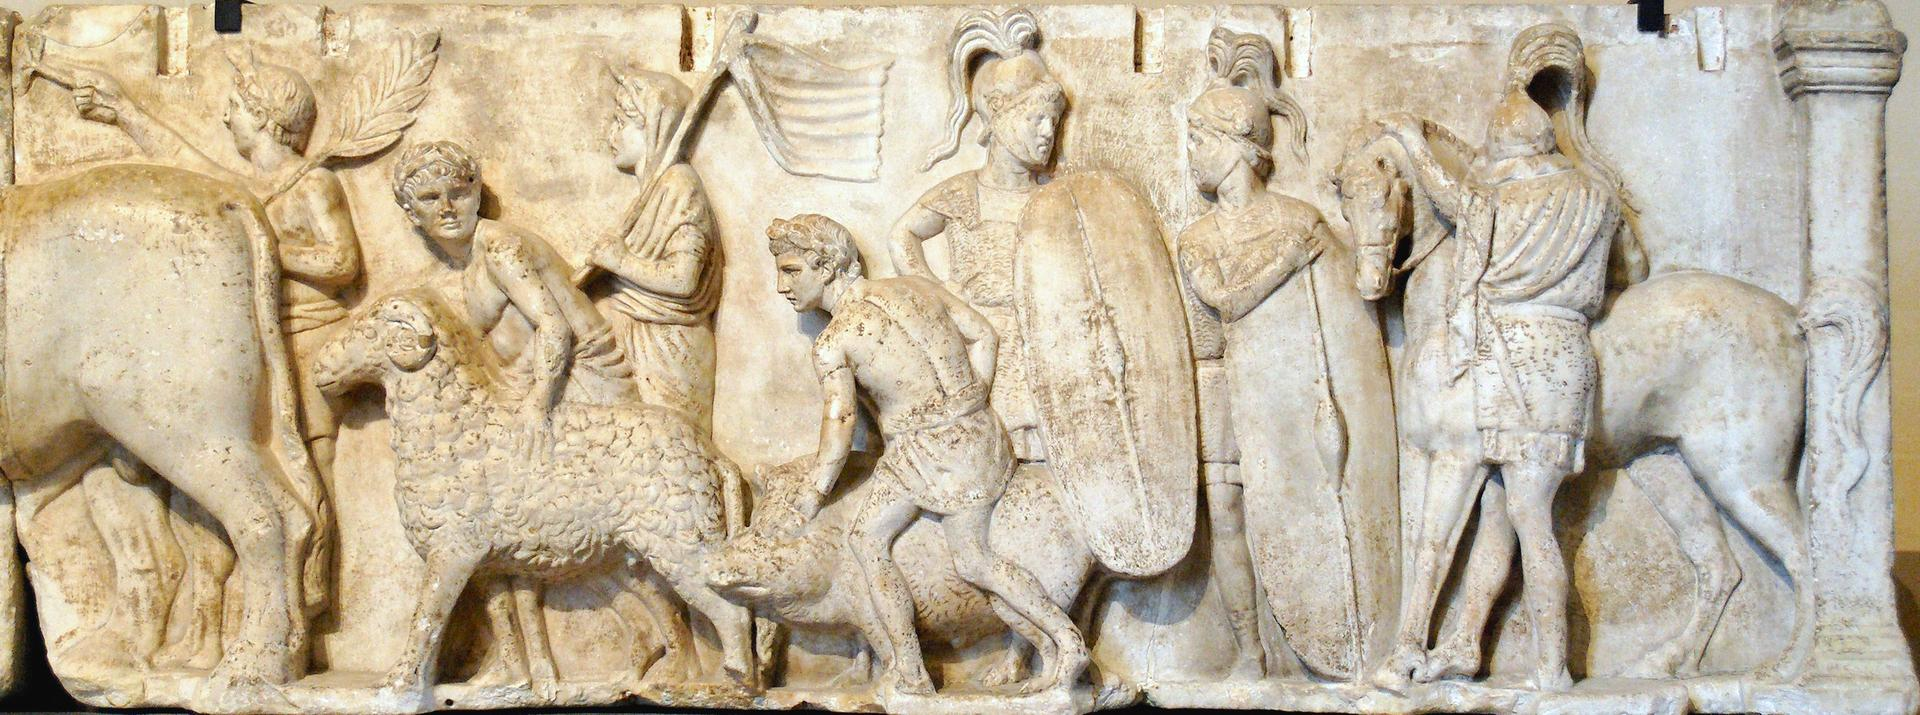 Two Roman soldiers shown in the  Ahenobarbus relief (Image Credit: Public Domain)